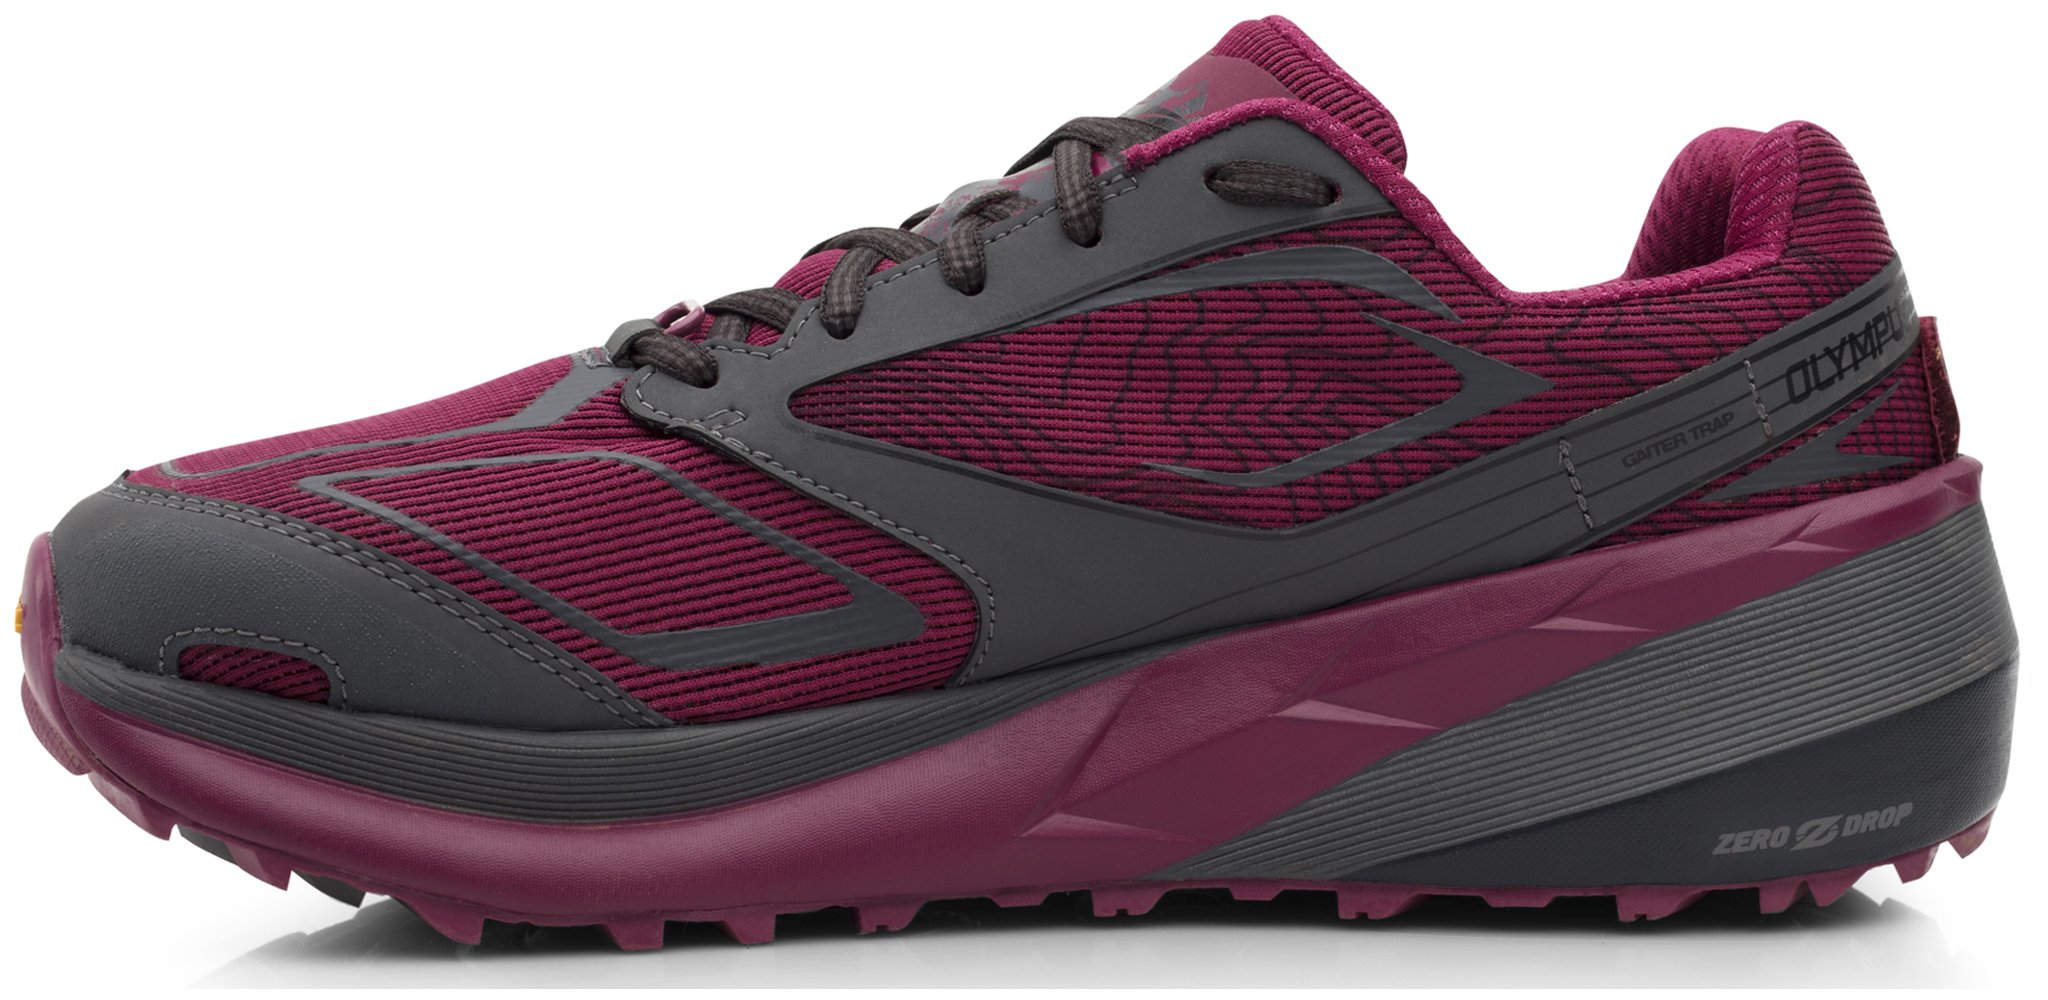 Altra AFW1859F Women's Olympus 3 Trail Running Shoe, Raspberry - 11 B(M) US by Altra (Image #2)